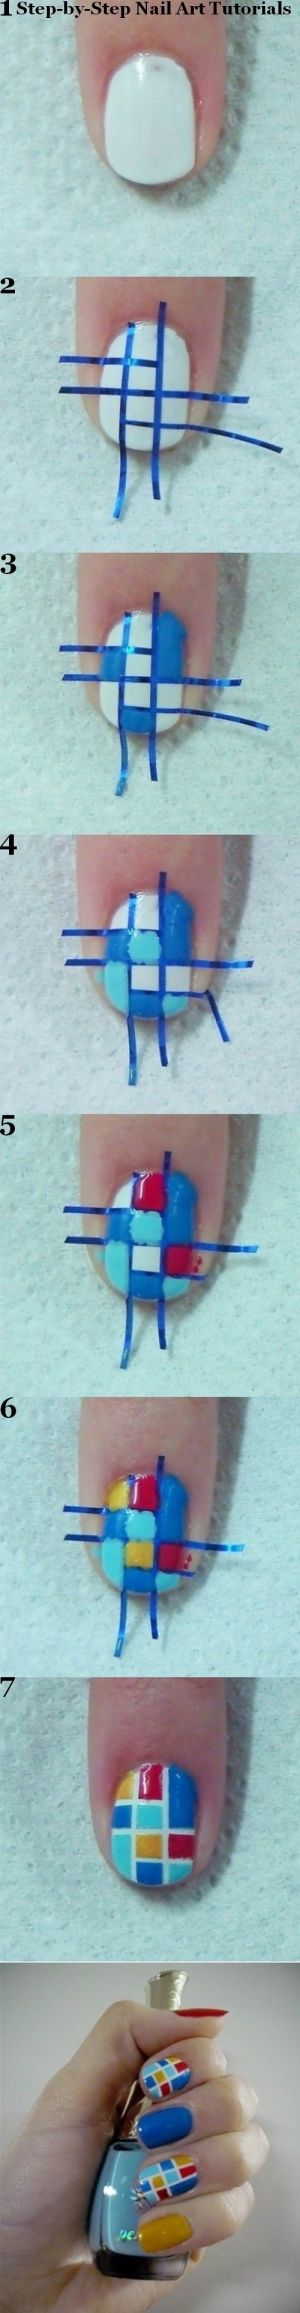 Step-by-Step nail art tutorial! So cute!